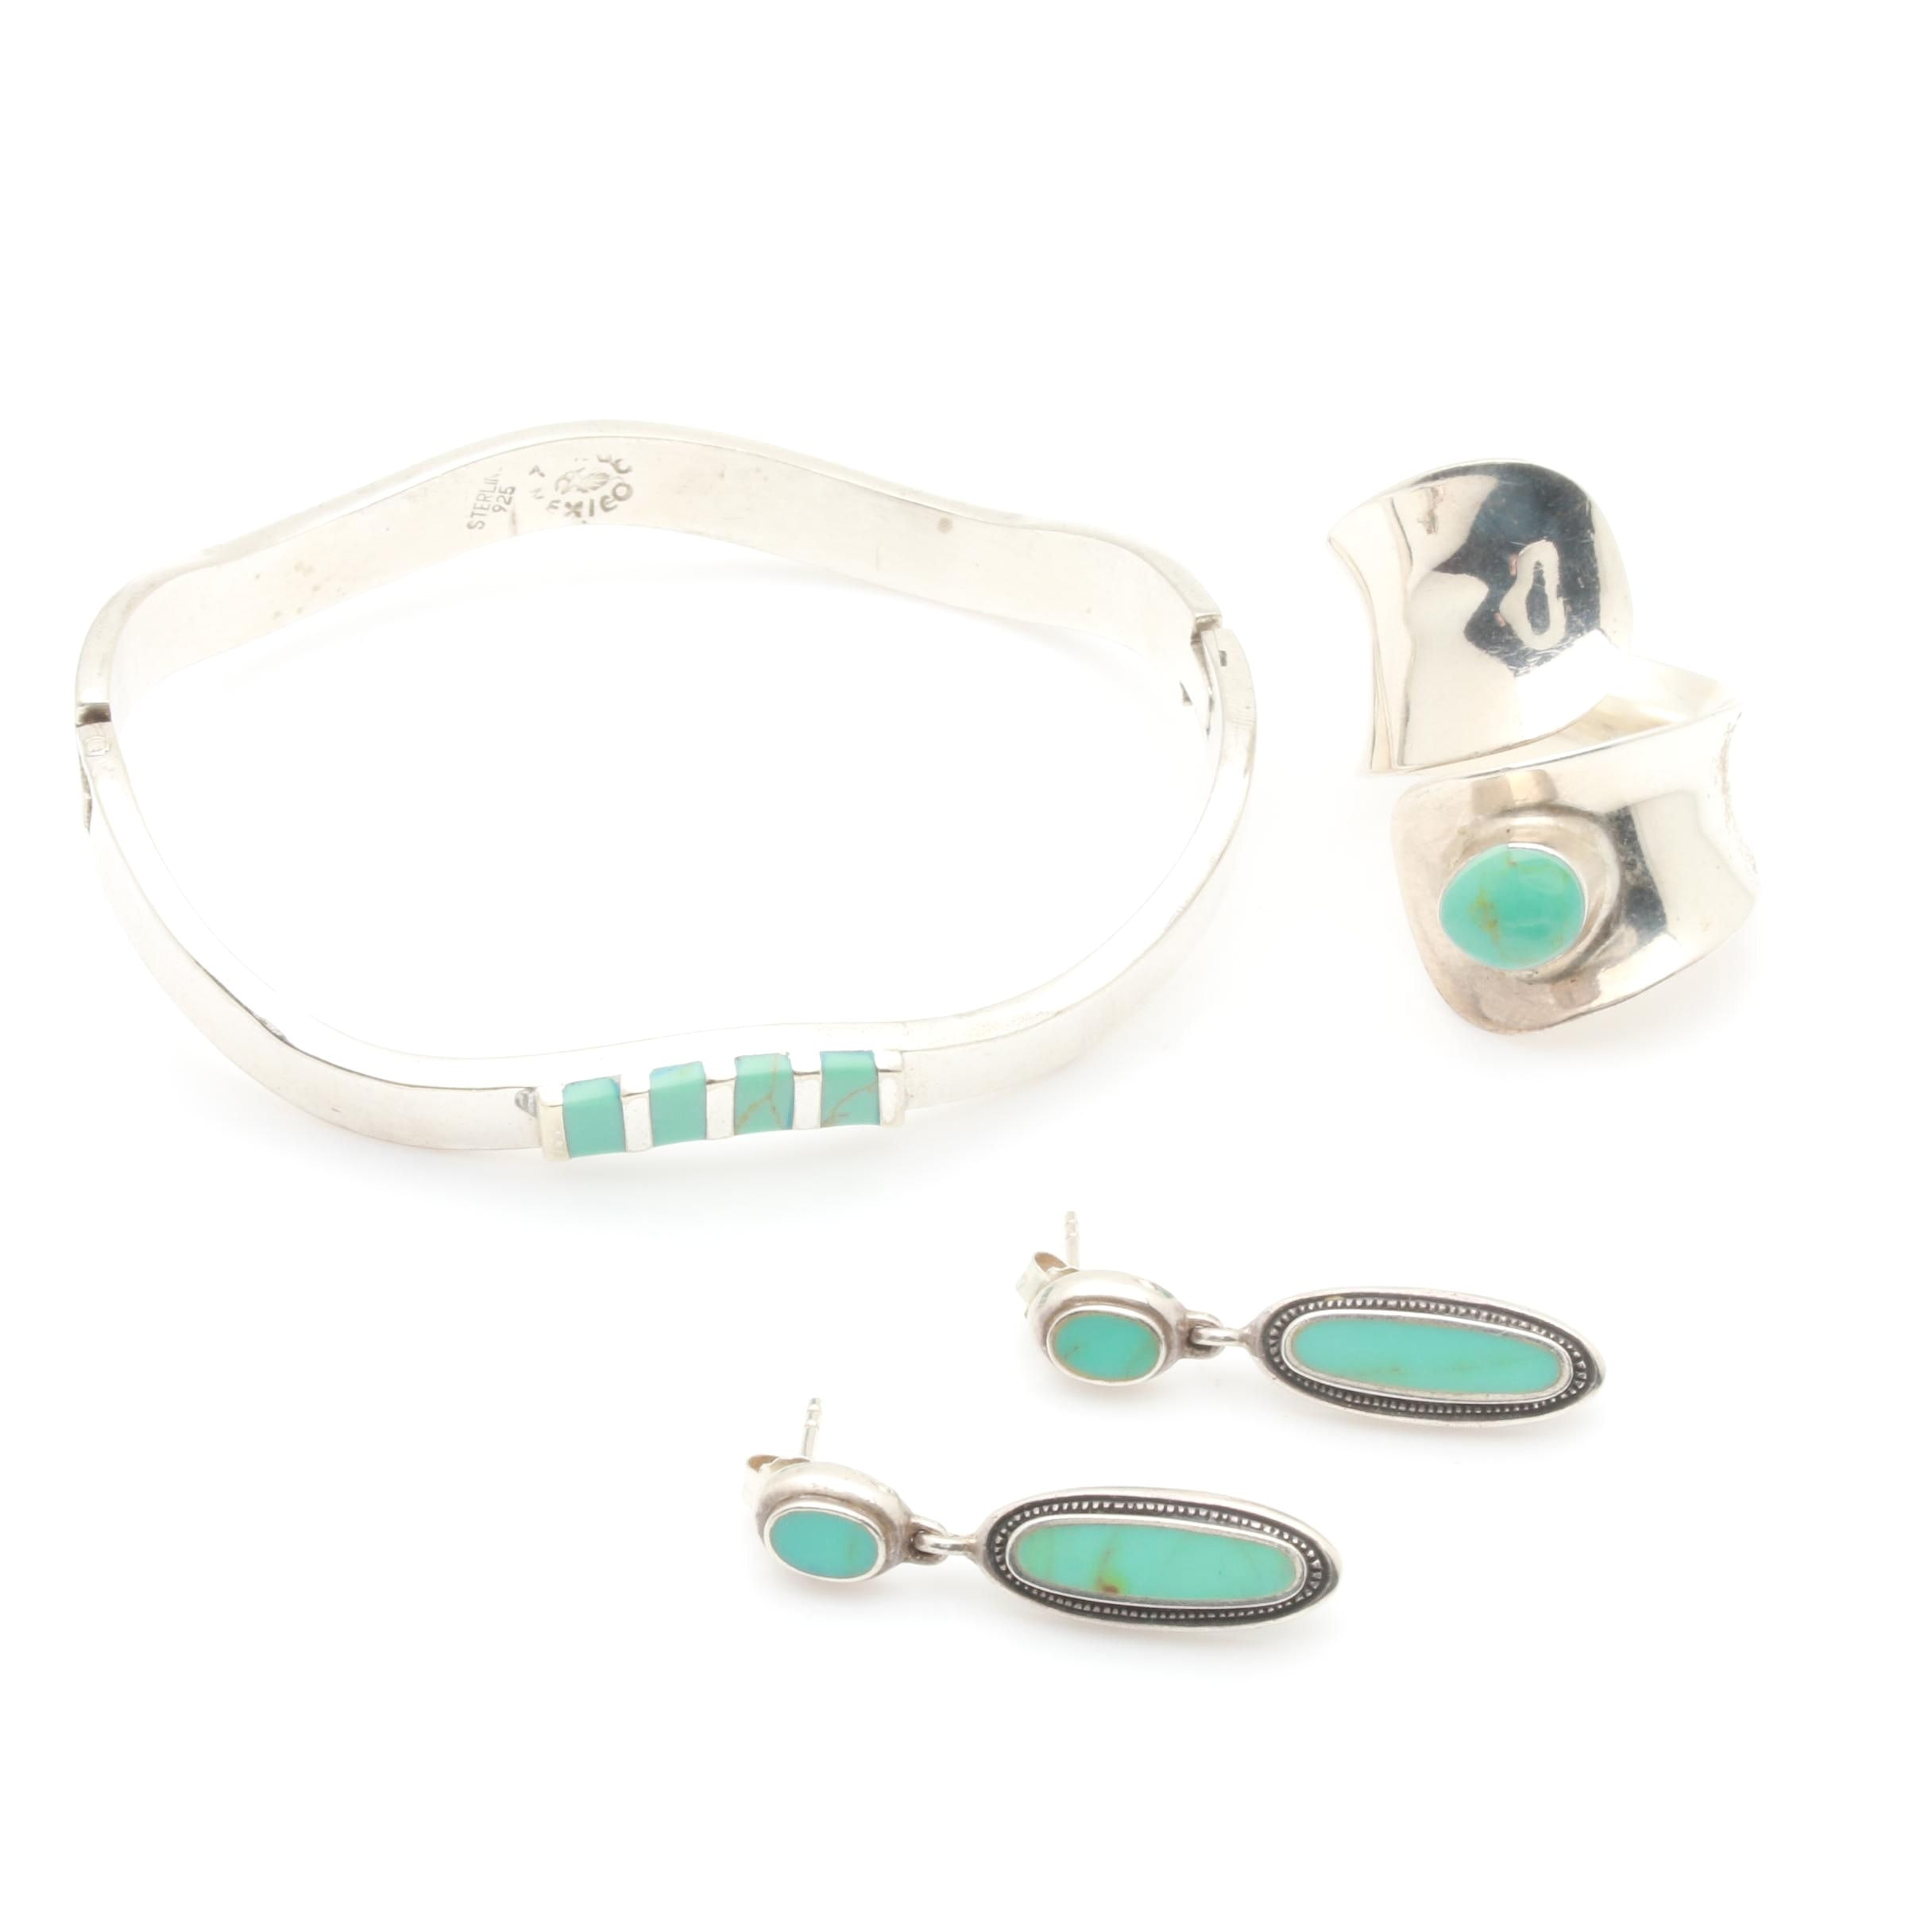 Sterling Silver Imitation Turquoise Bracelet, Ring, and Earring Selection